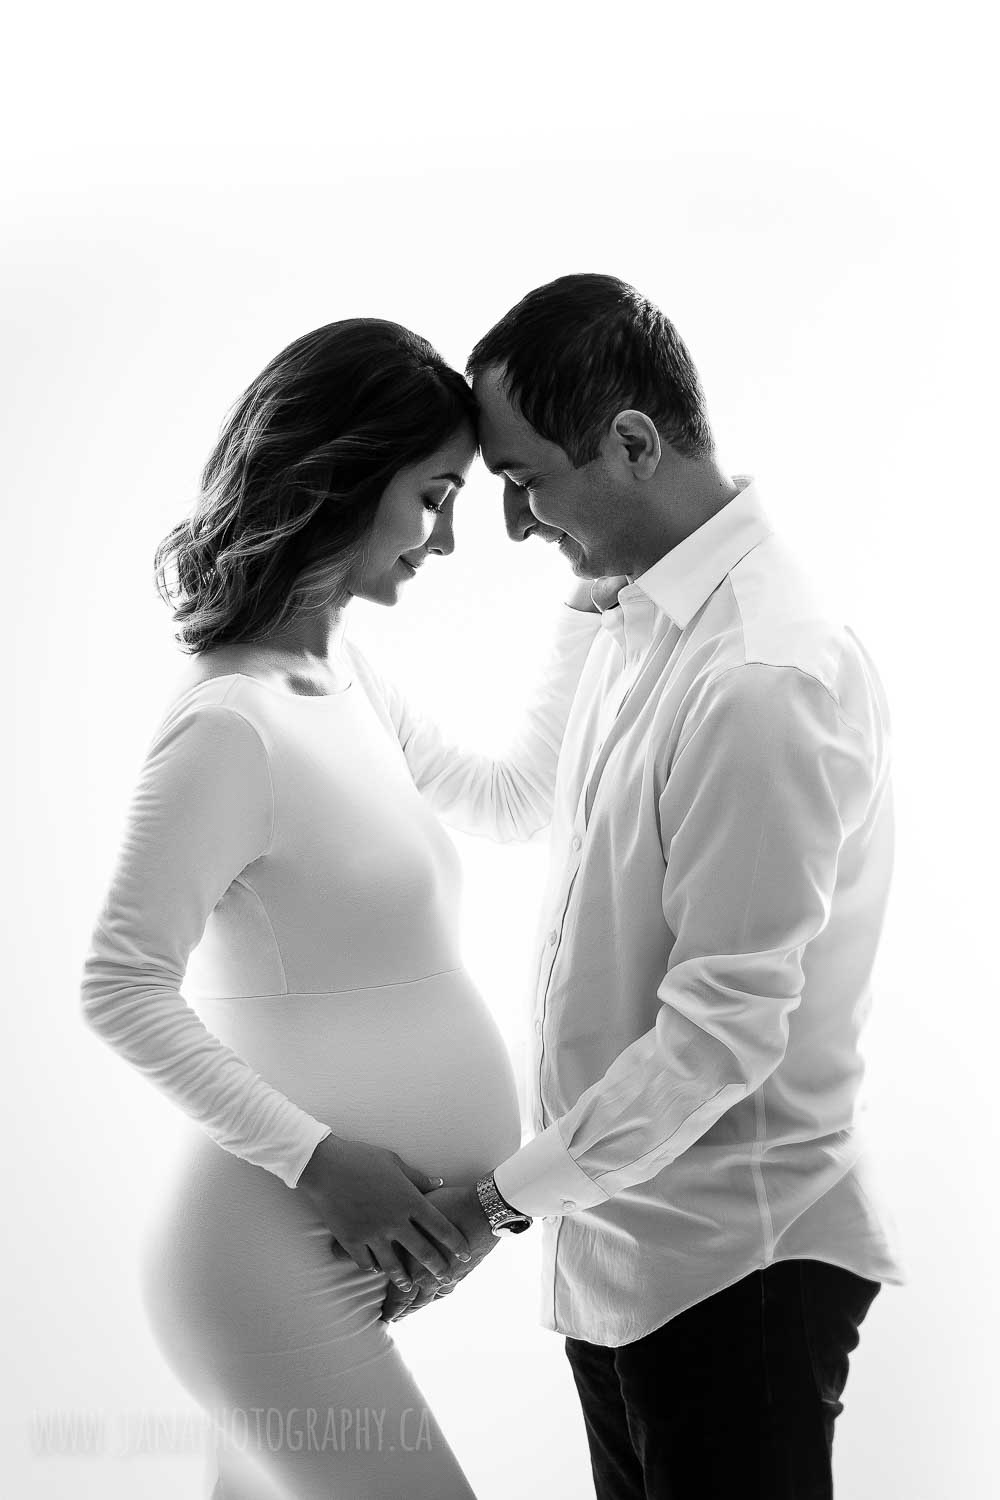 Mom and dad maternity photo in front of each other in black and white